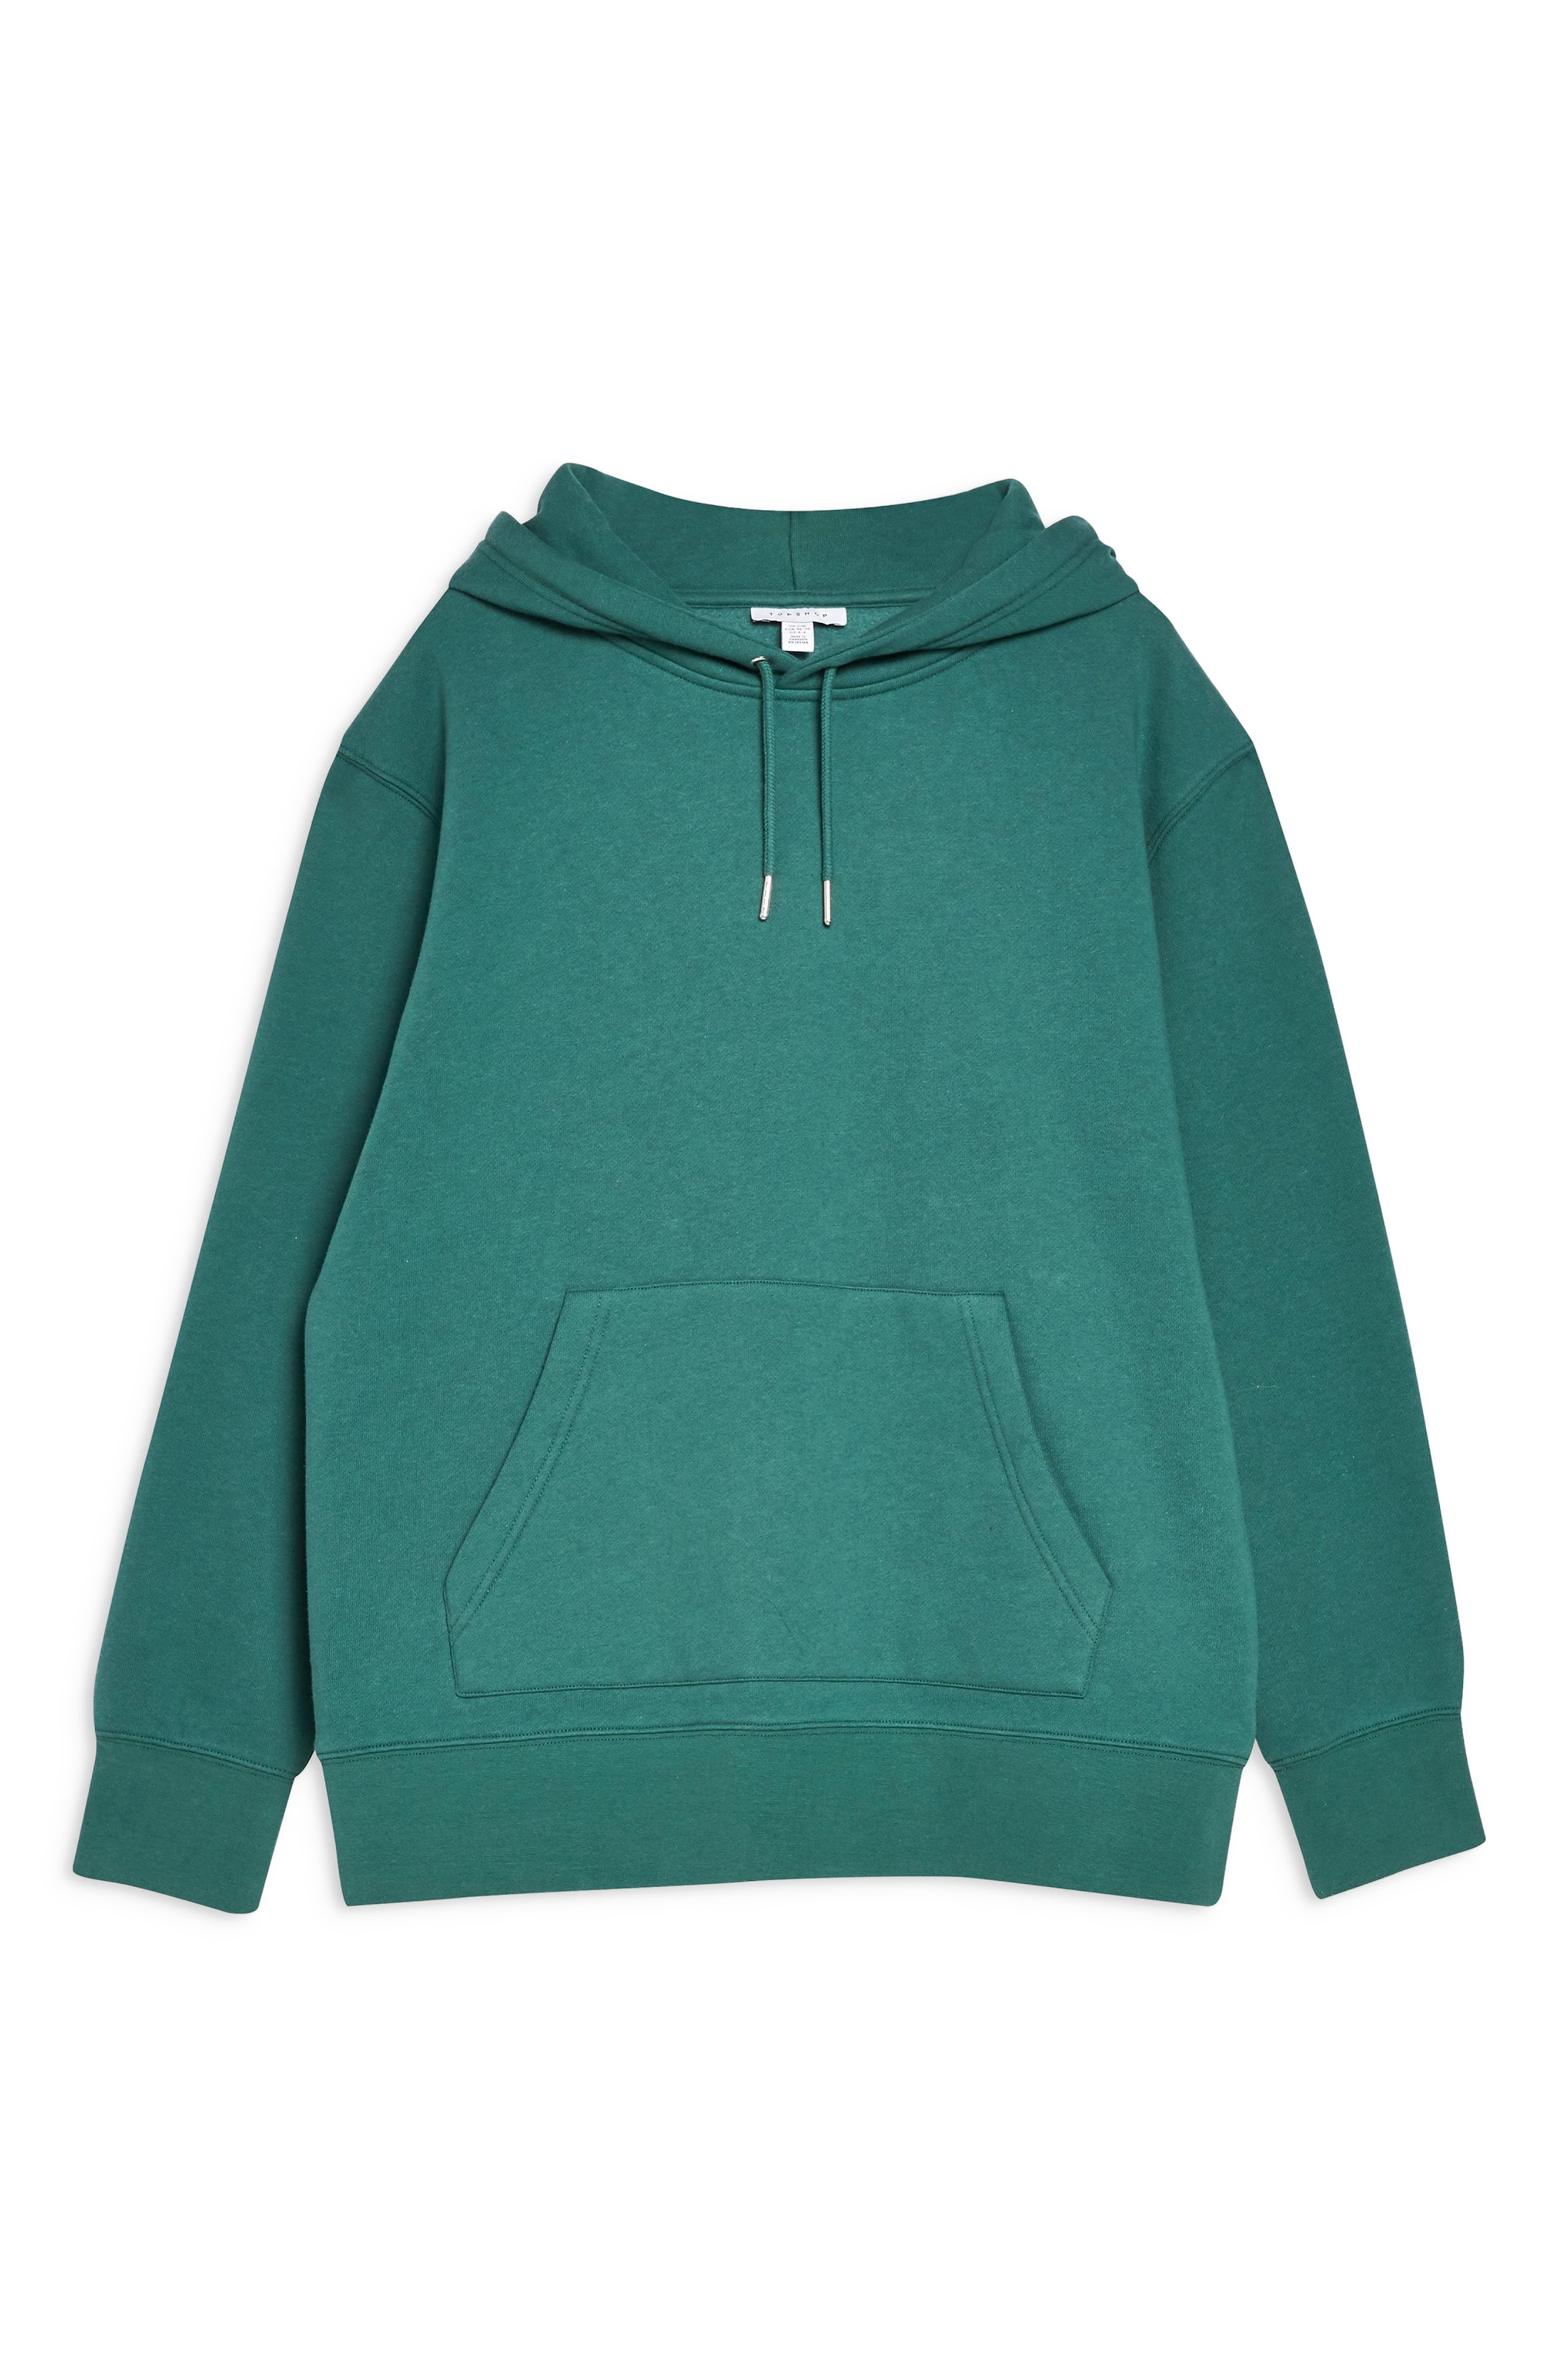 Women's Sweatshirts & Hoodies | Nordstrom